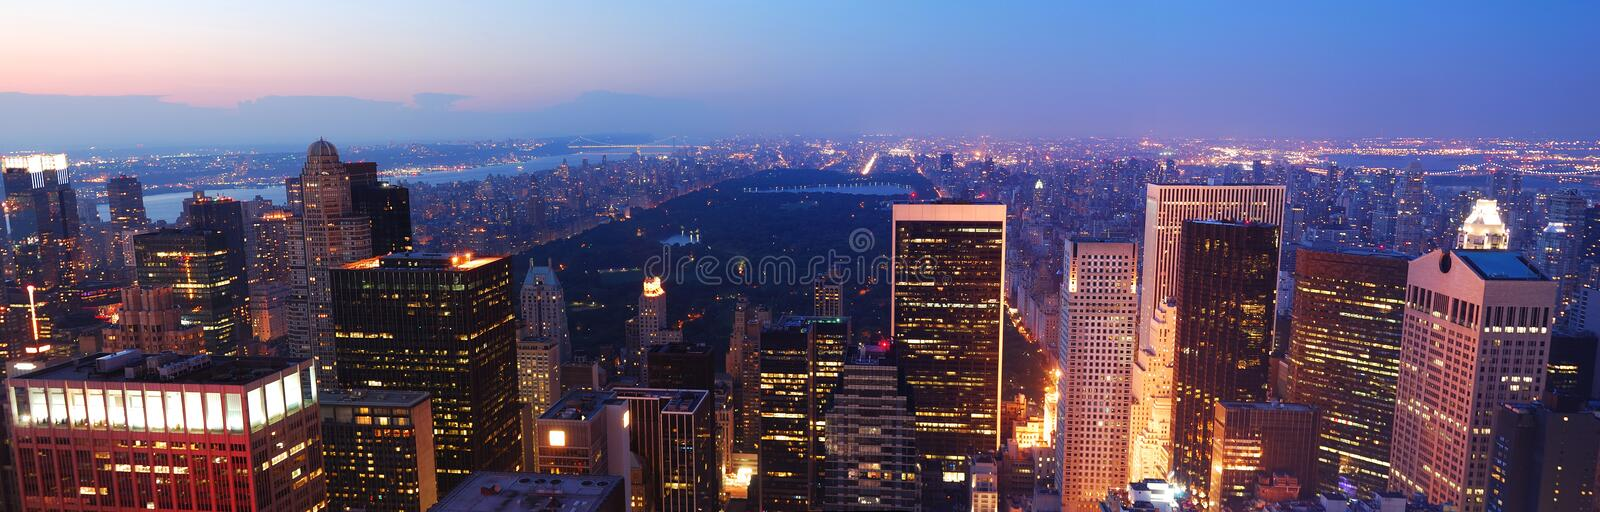 New York City Central Park panorama royalty free stock photography